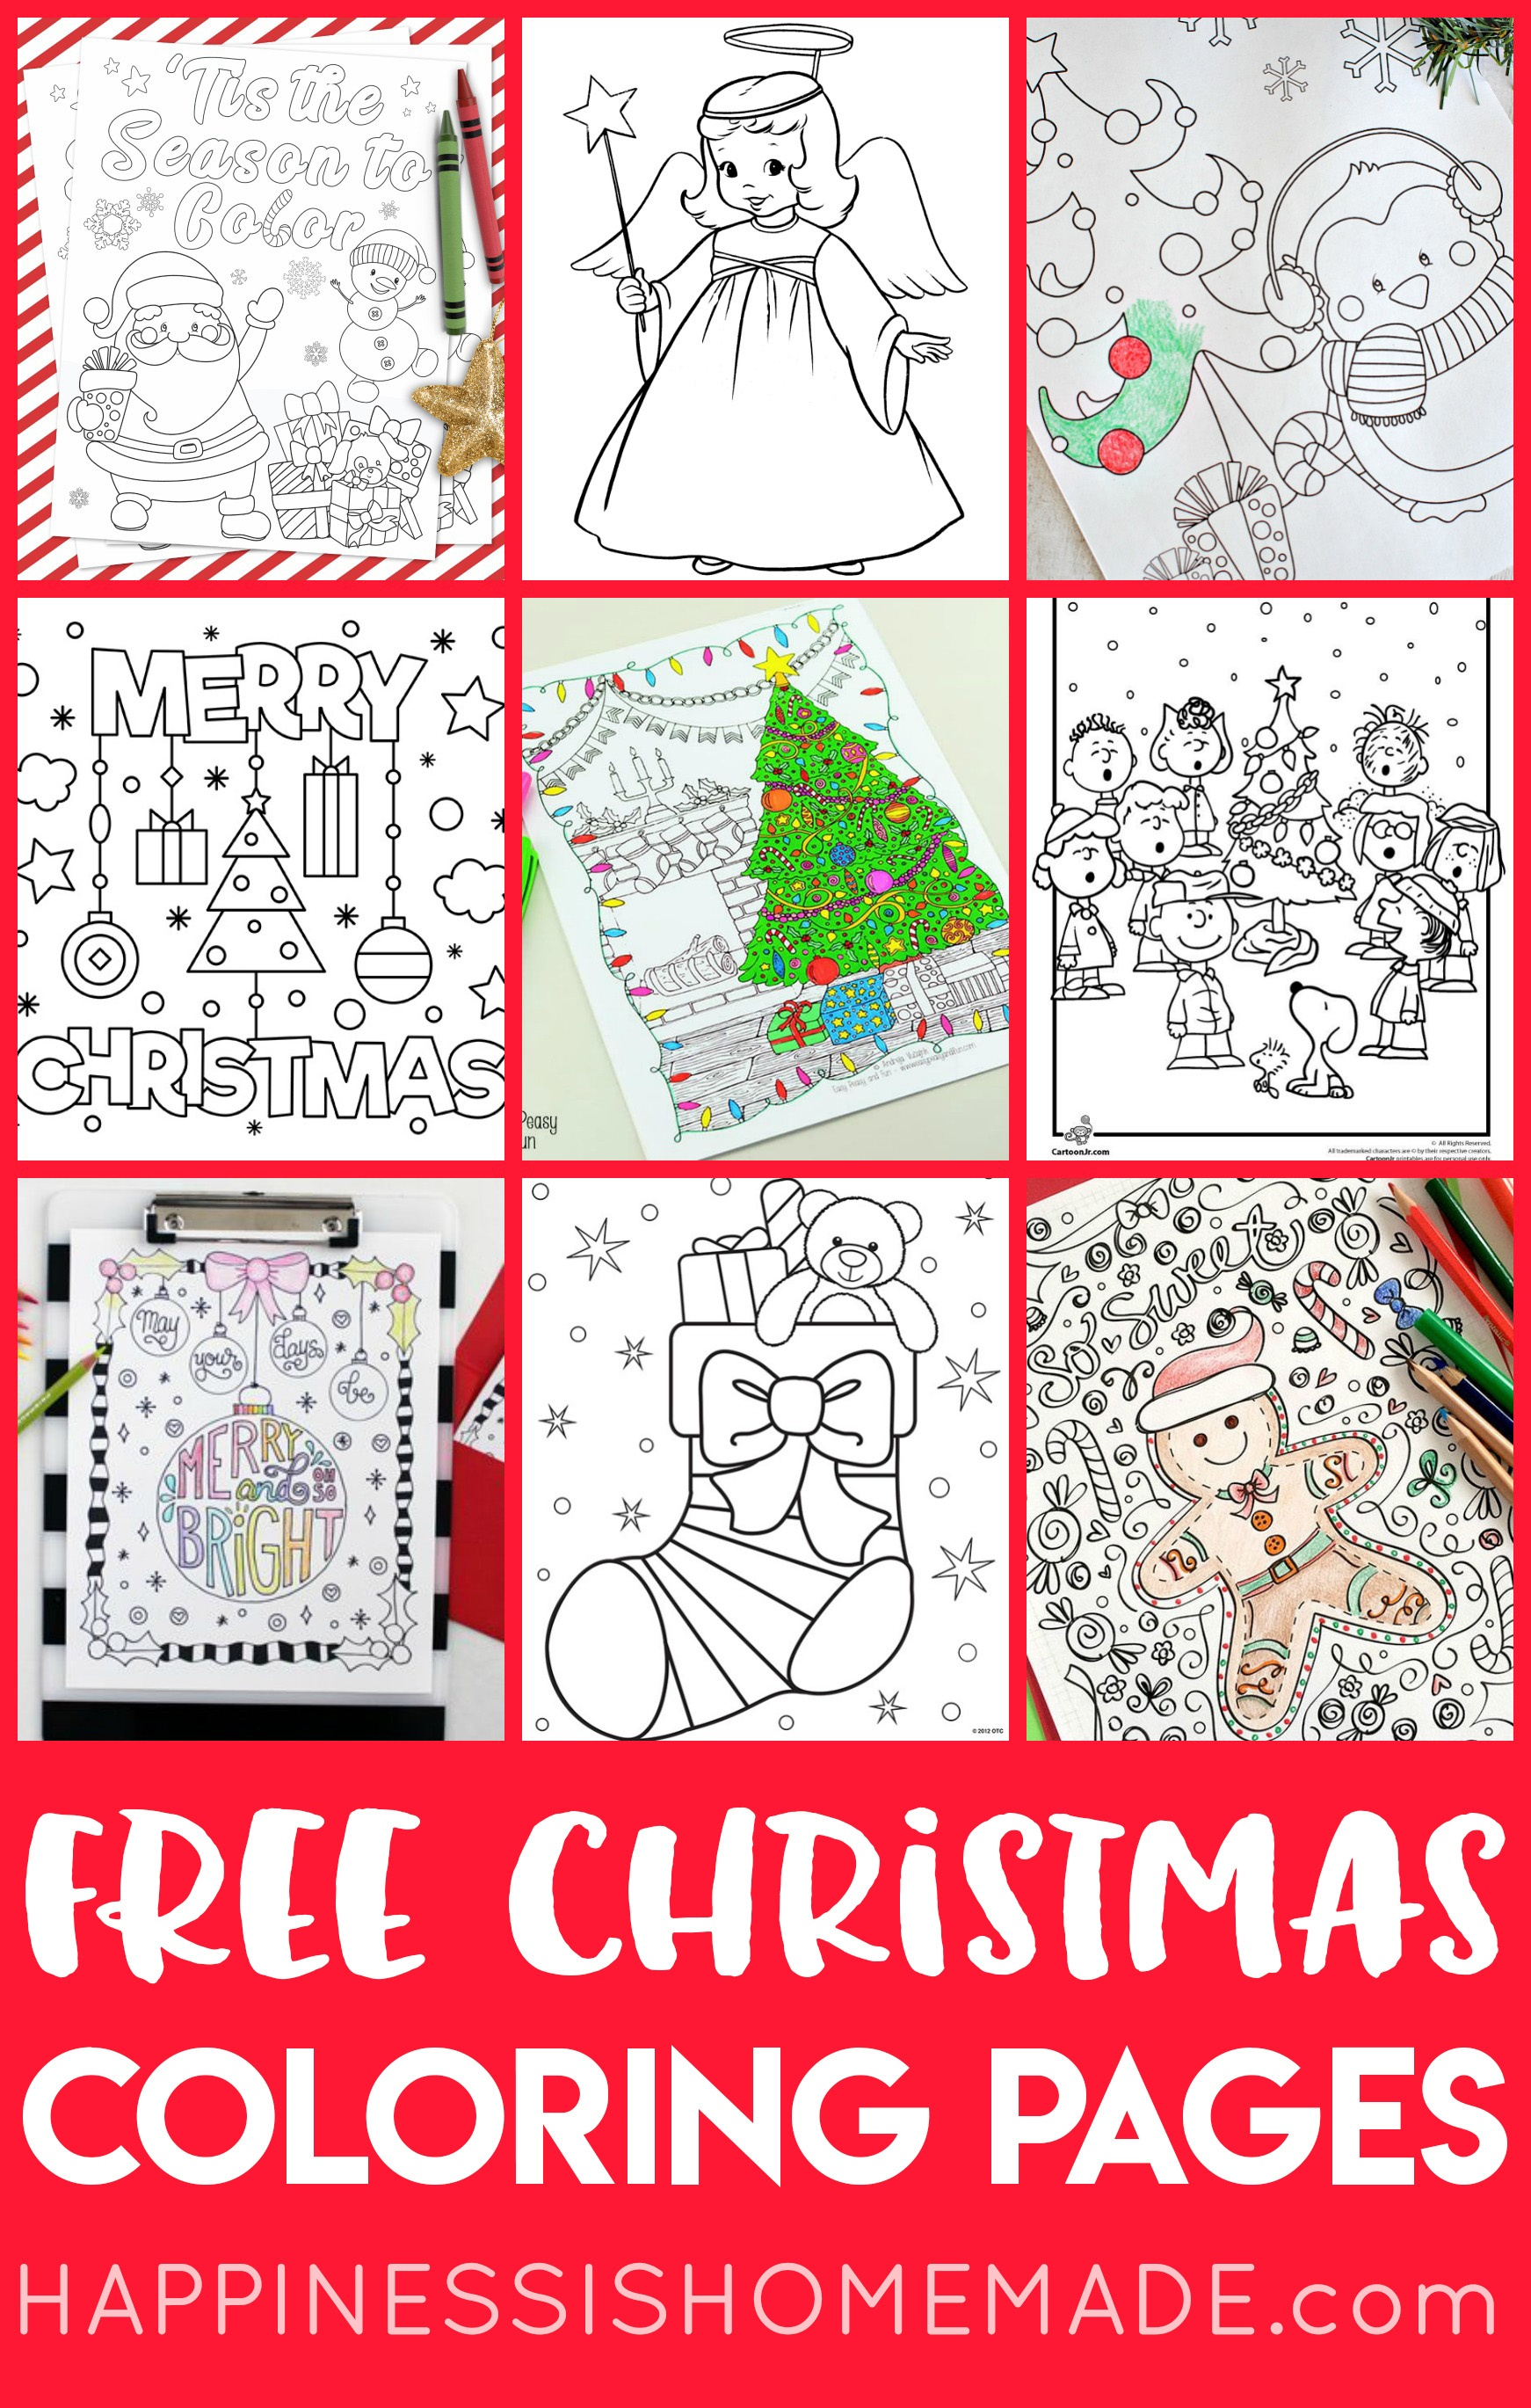 Free Christmas Coloring Pages For Adults And Kids - Happiness Is - Free Printable Christmas Coloring Pages And Activities